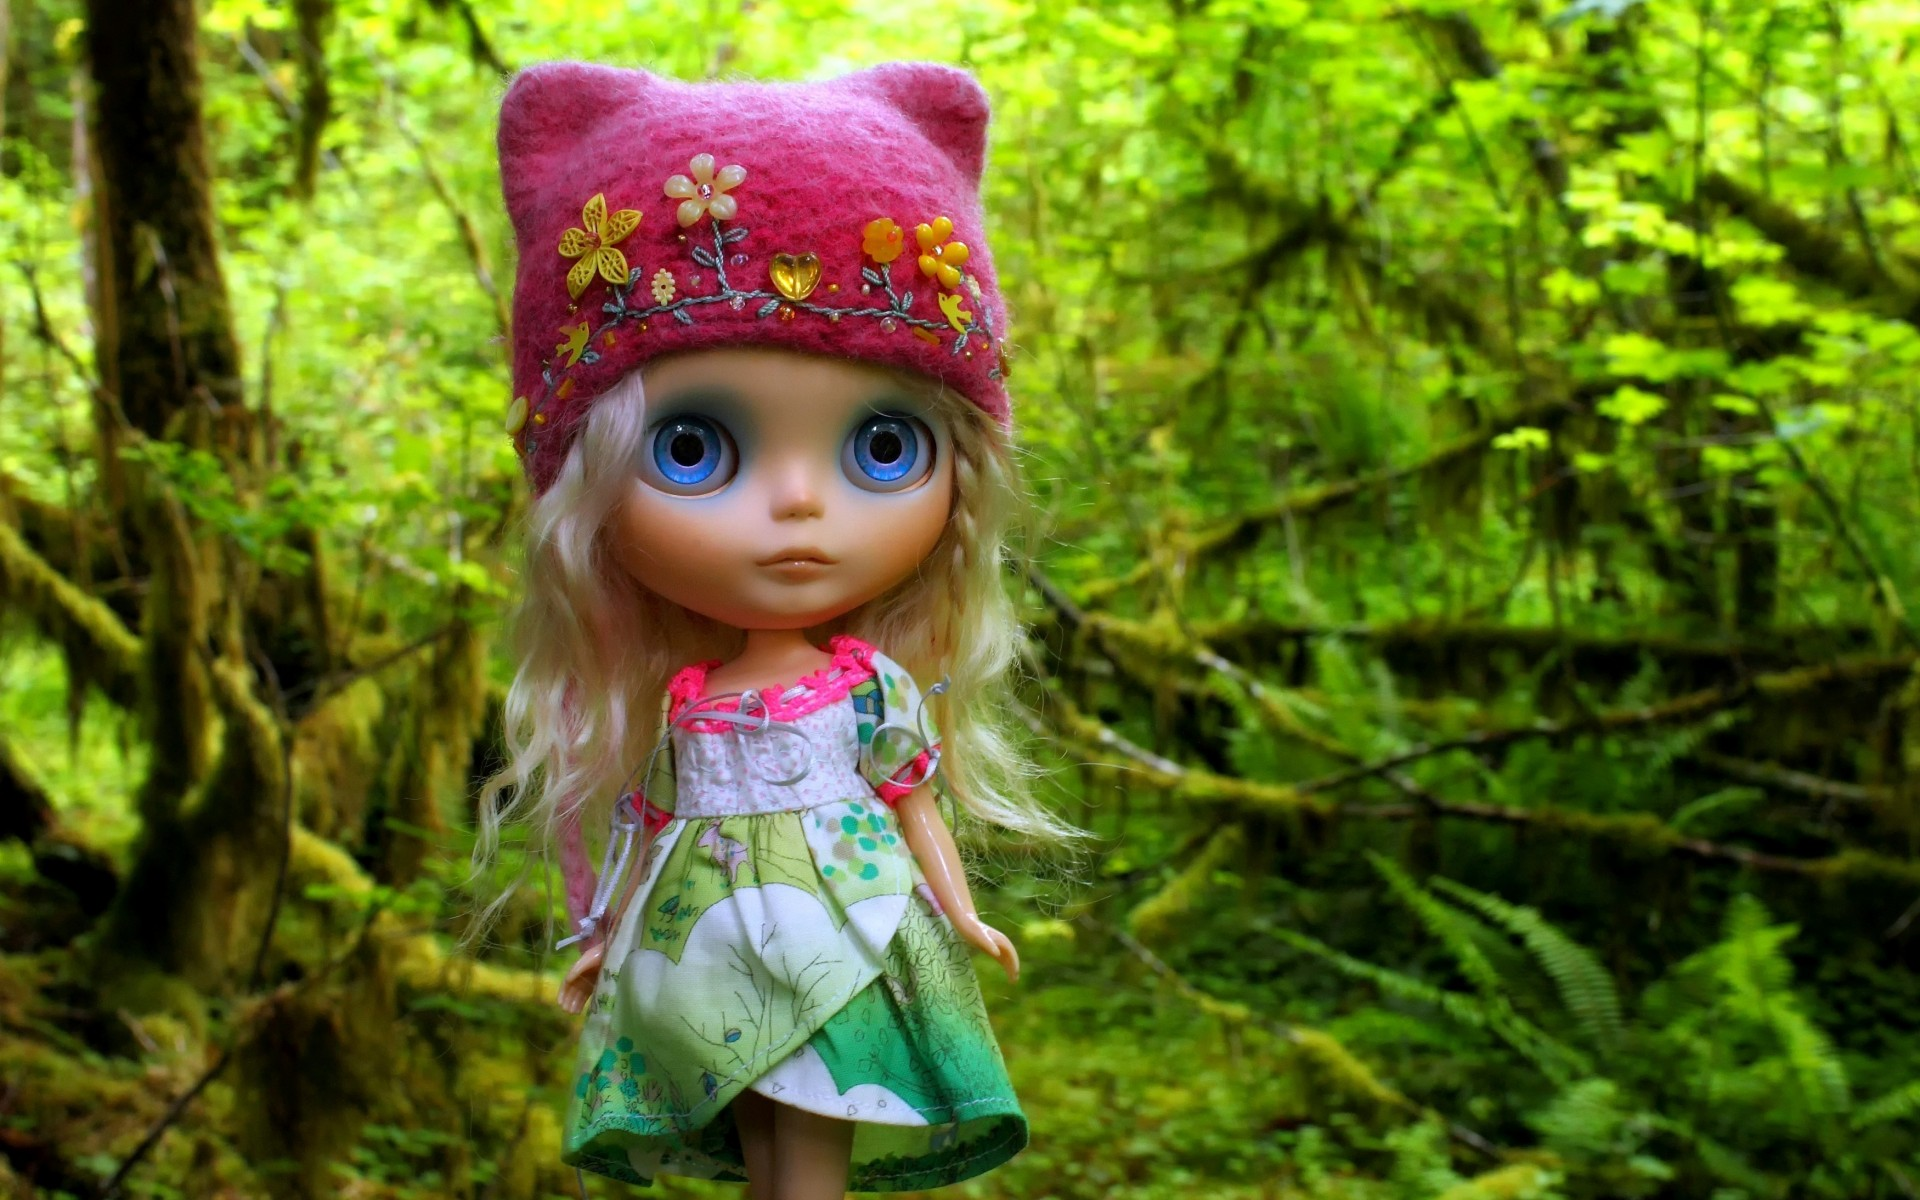 Cute Wallpaper Images For Dp Doll Toy Wood Hair Hat Cap Toys Girl Girls Wallpaper